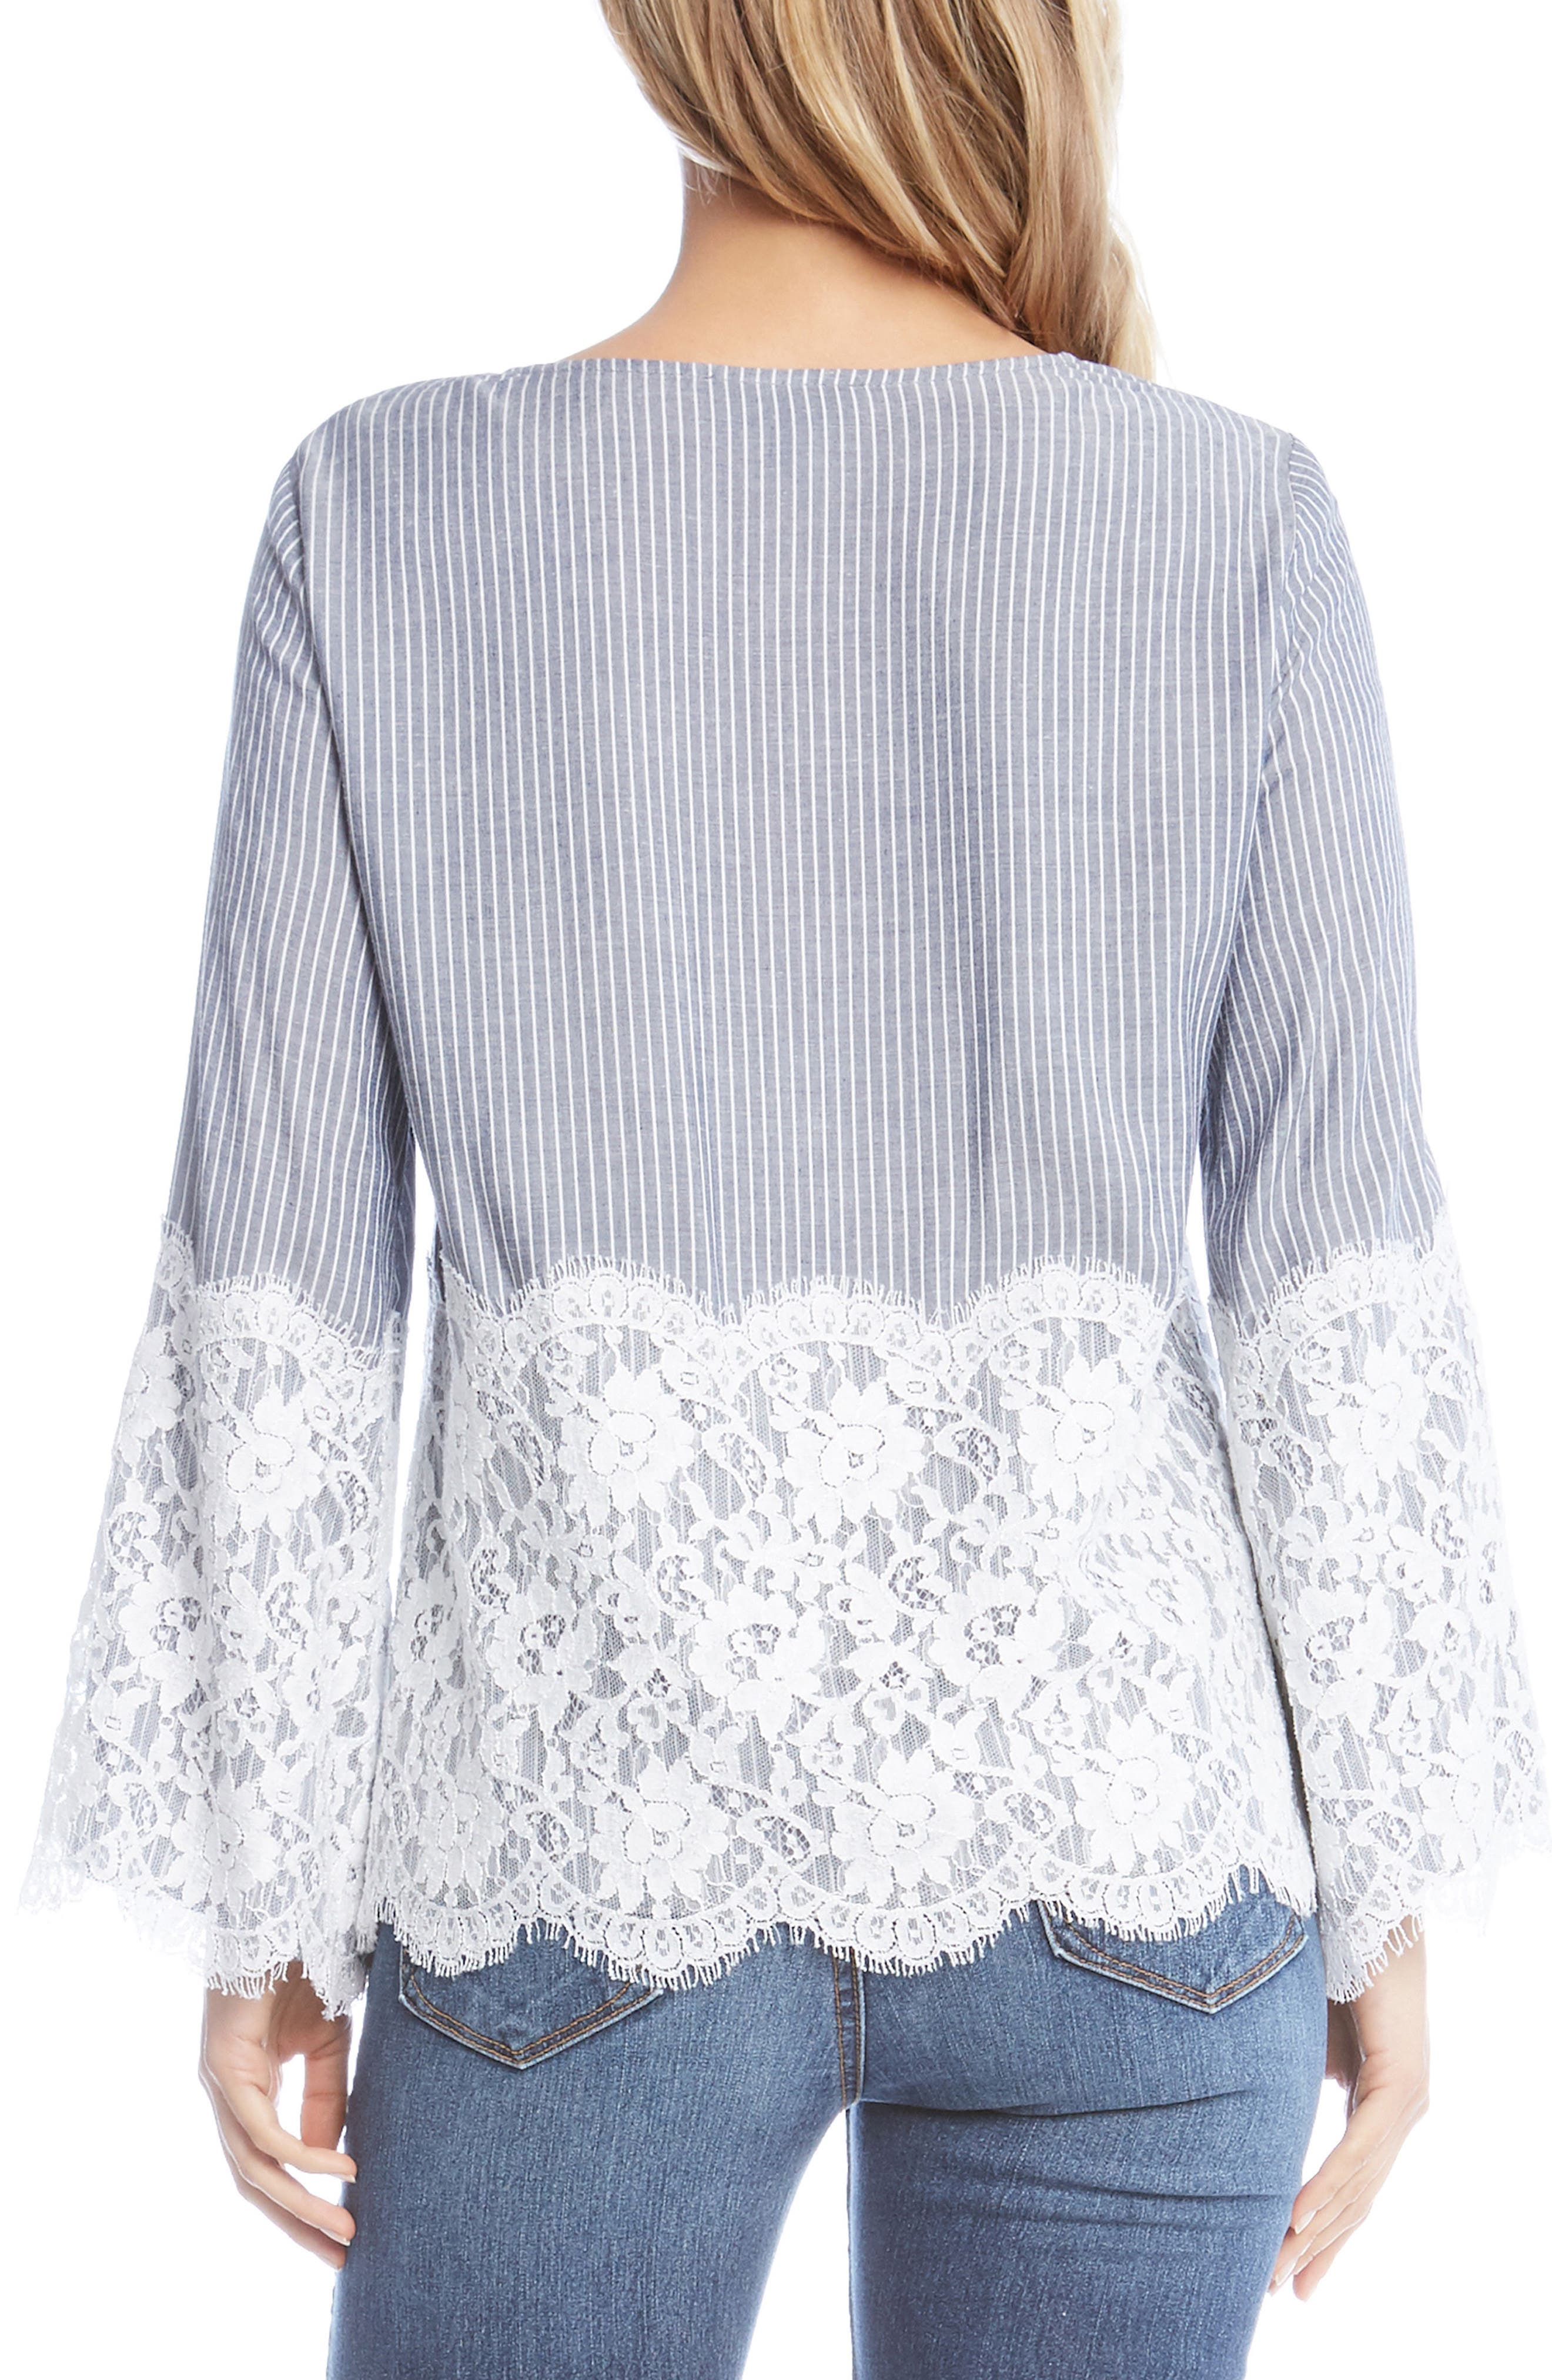 Chambray Stripe Lace Top,                             Alternate thumbnail 2, color,                             020